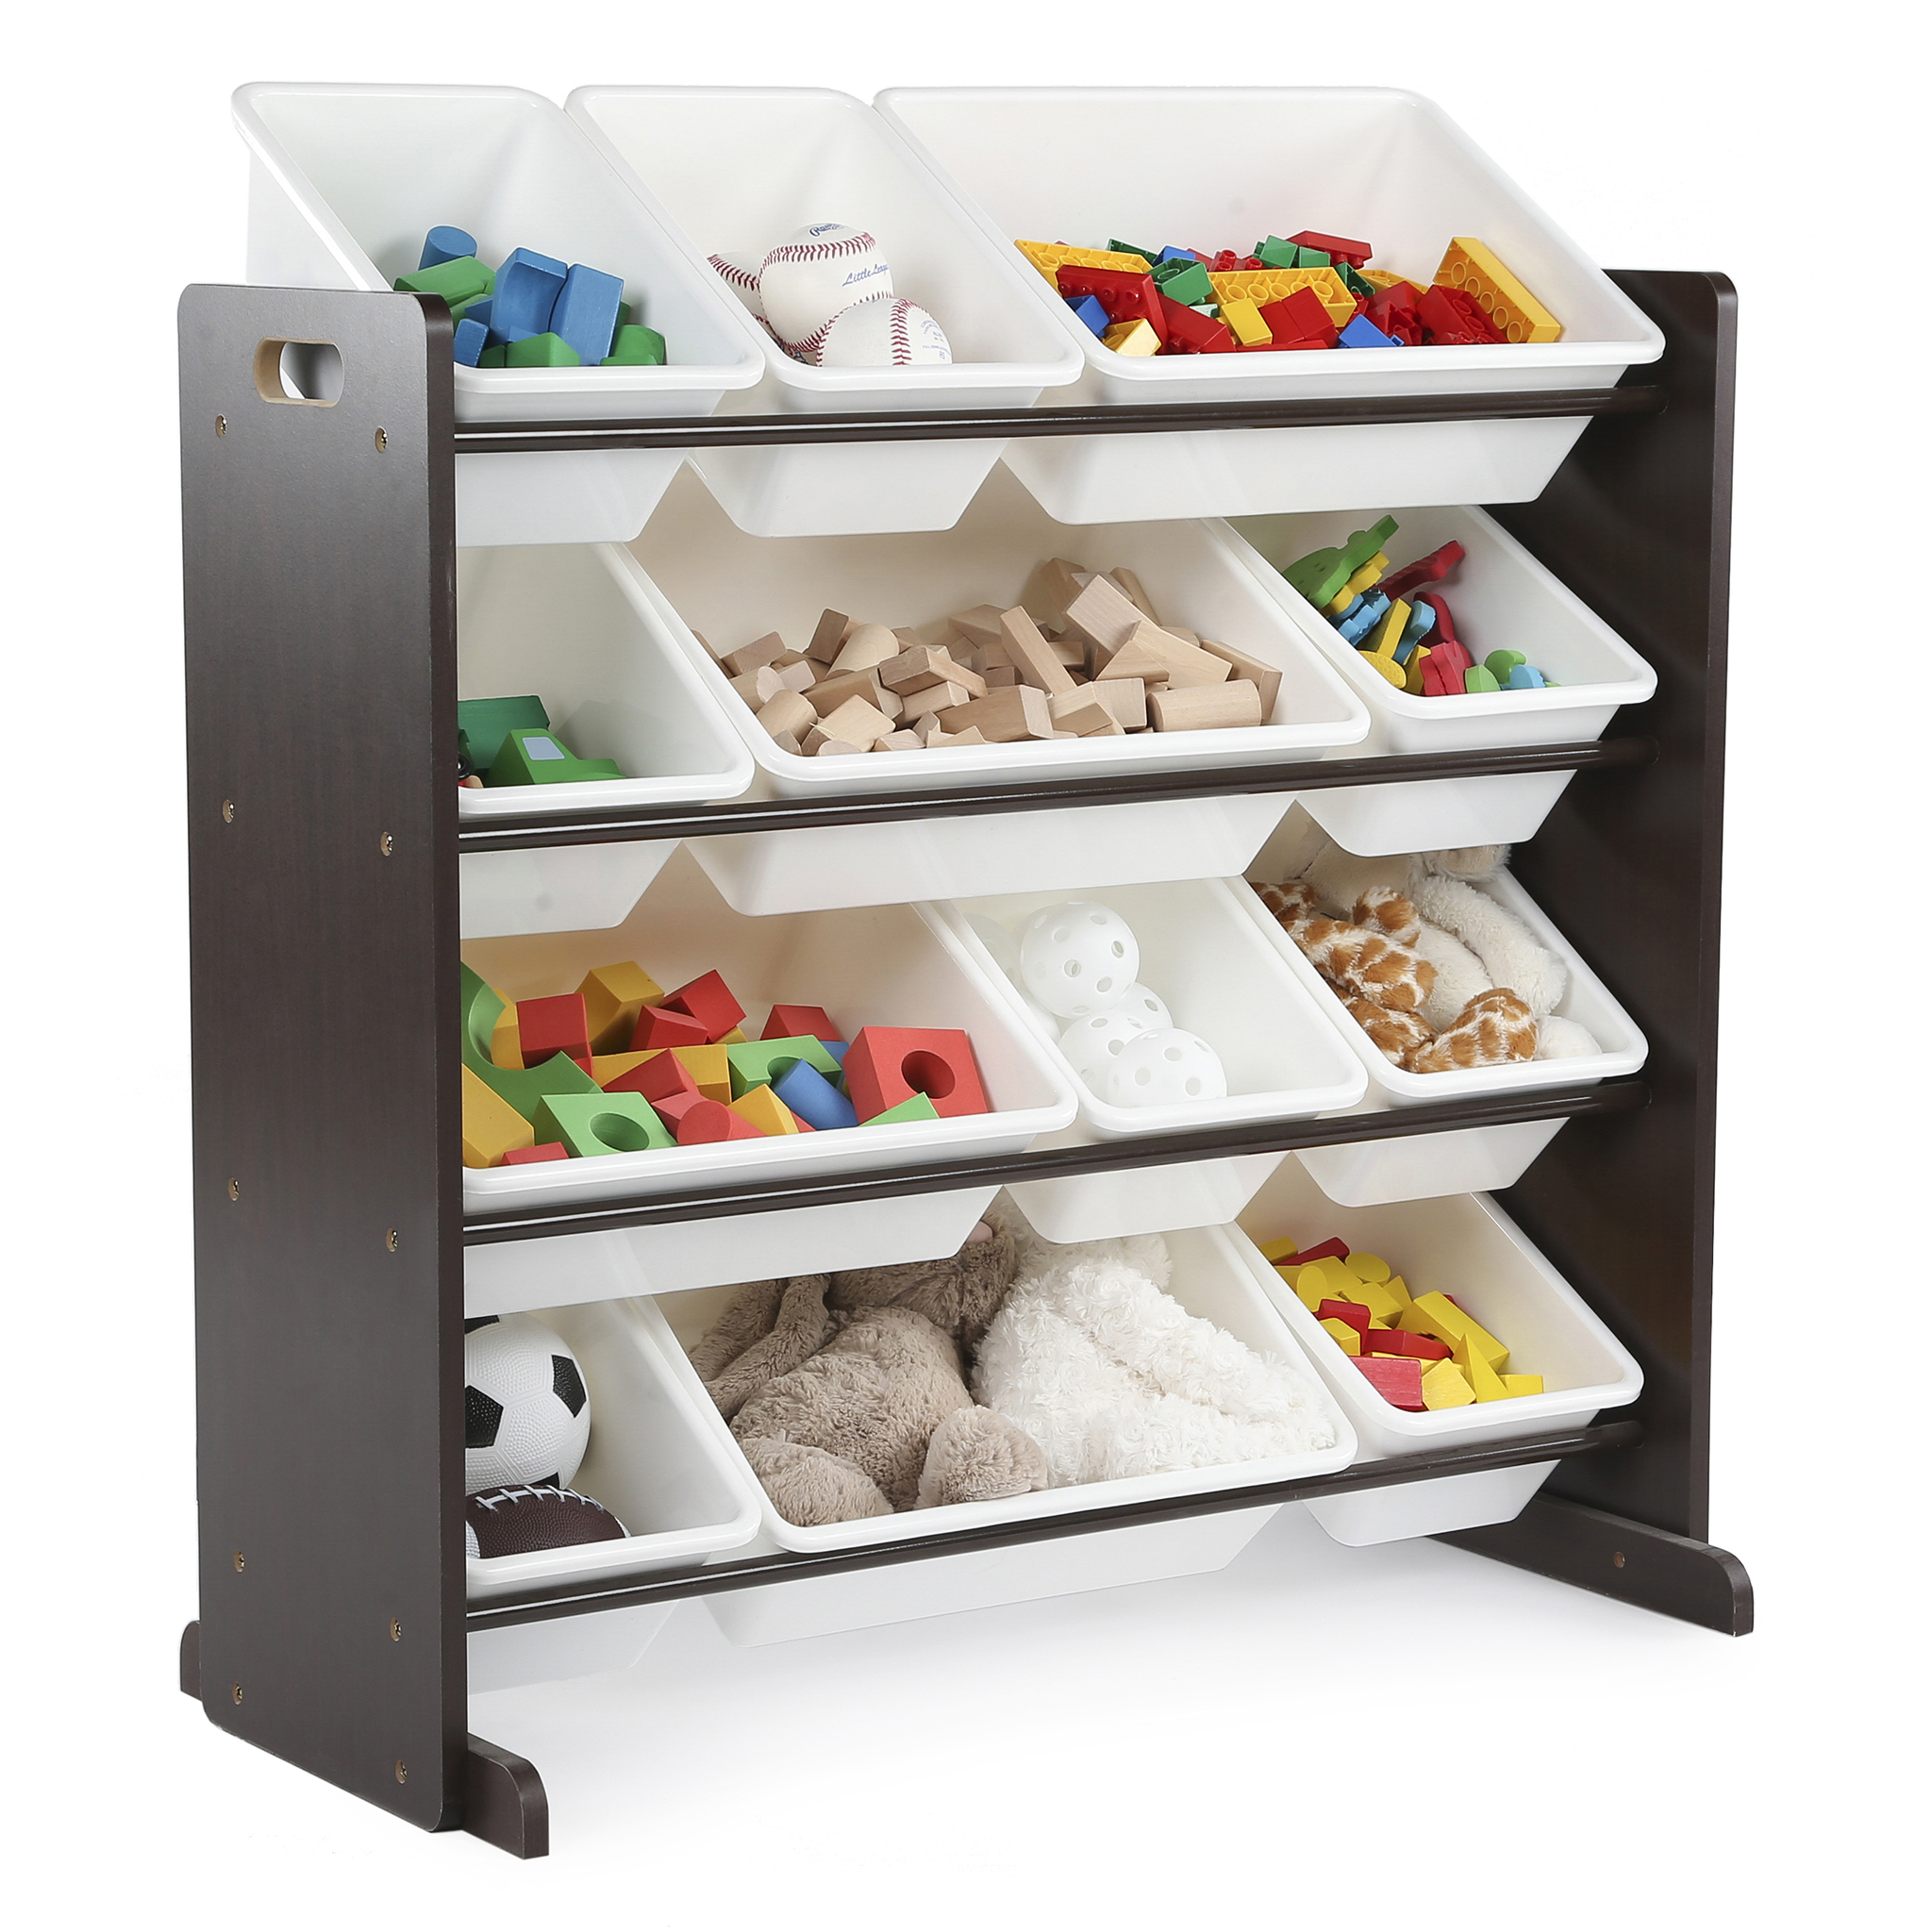 Delicieux Tot Tutors Kids Toy Storage Organizer With 12 Plastic Bins, Multiple Colors    Walmart.com